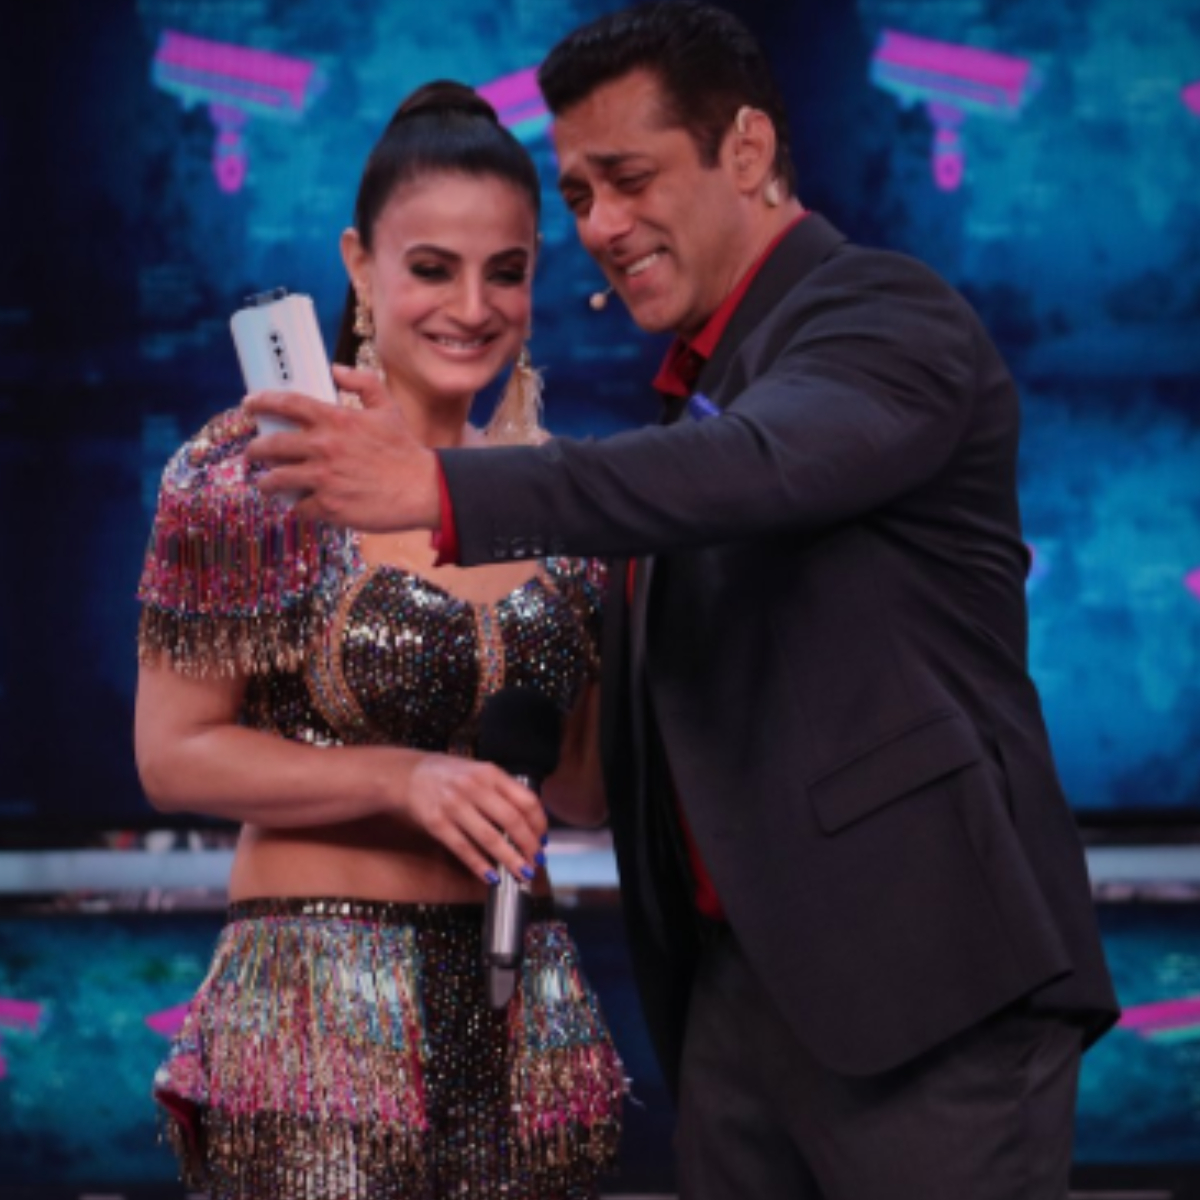 Bigg Boss 13: These memes ahead of Day 1 inside Salman Khan's show will leave you in splits